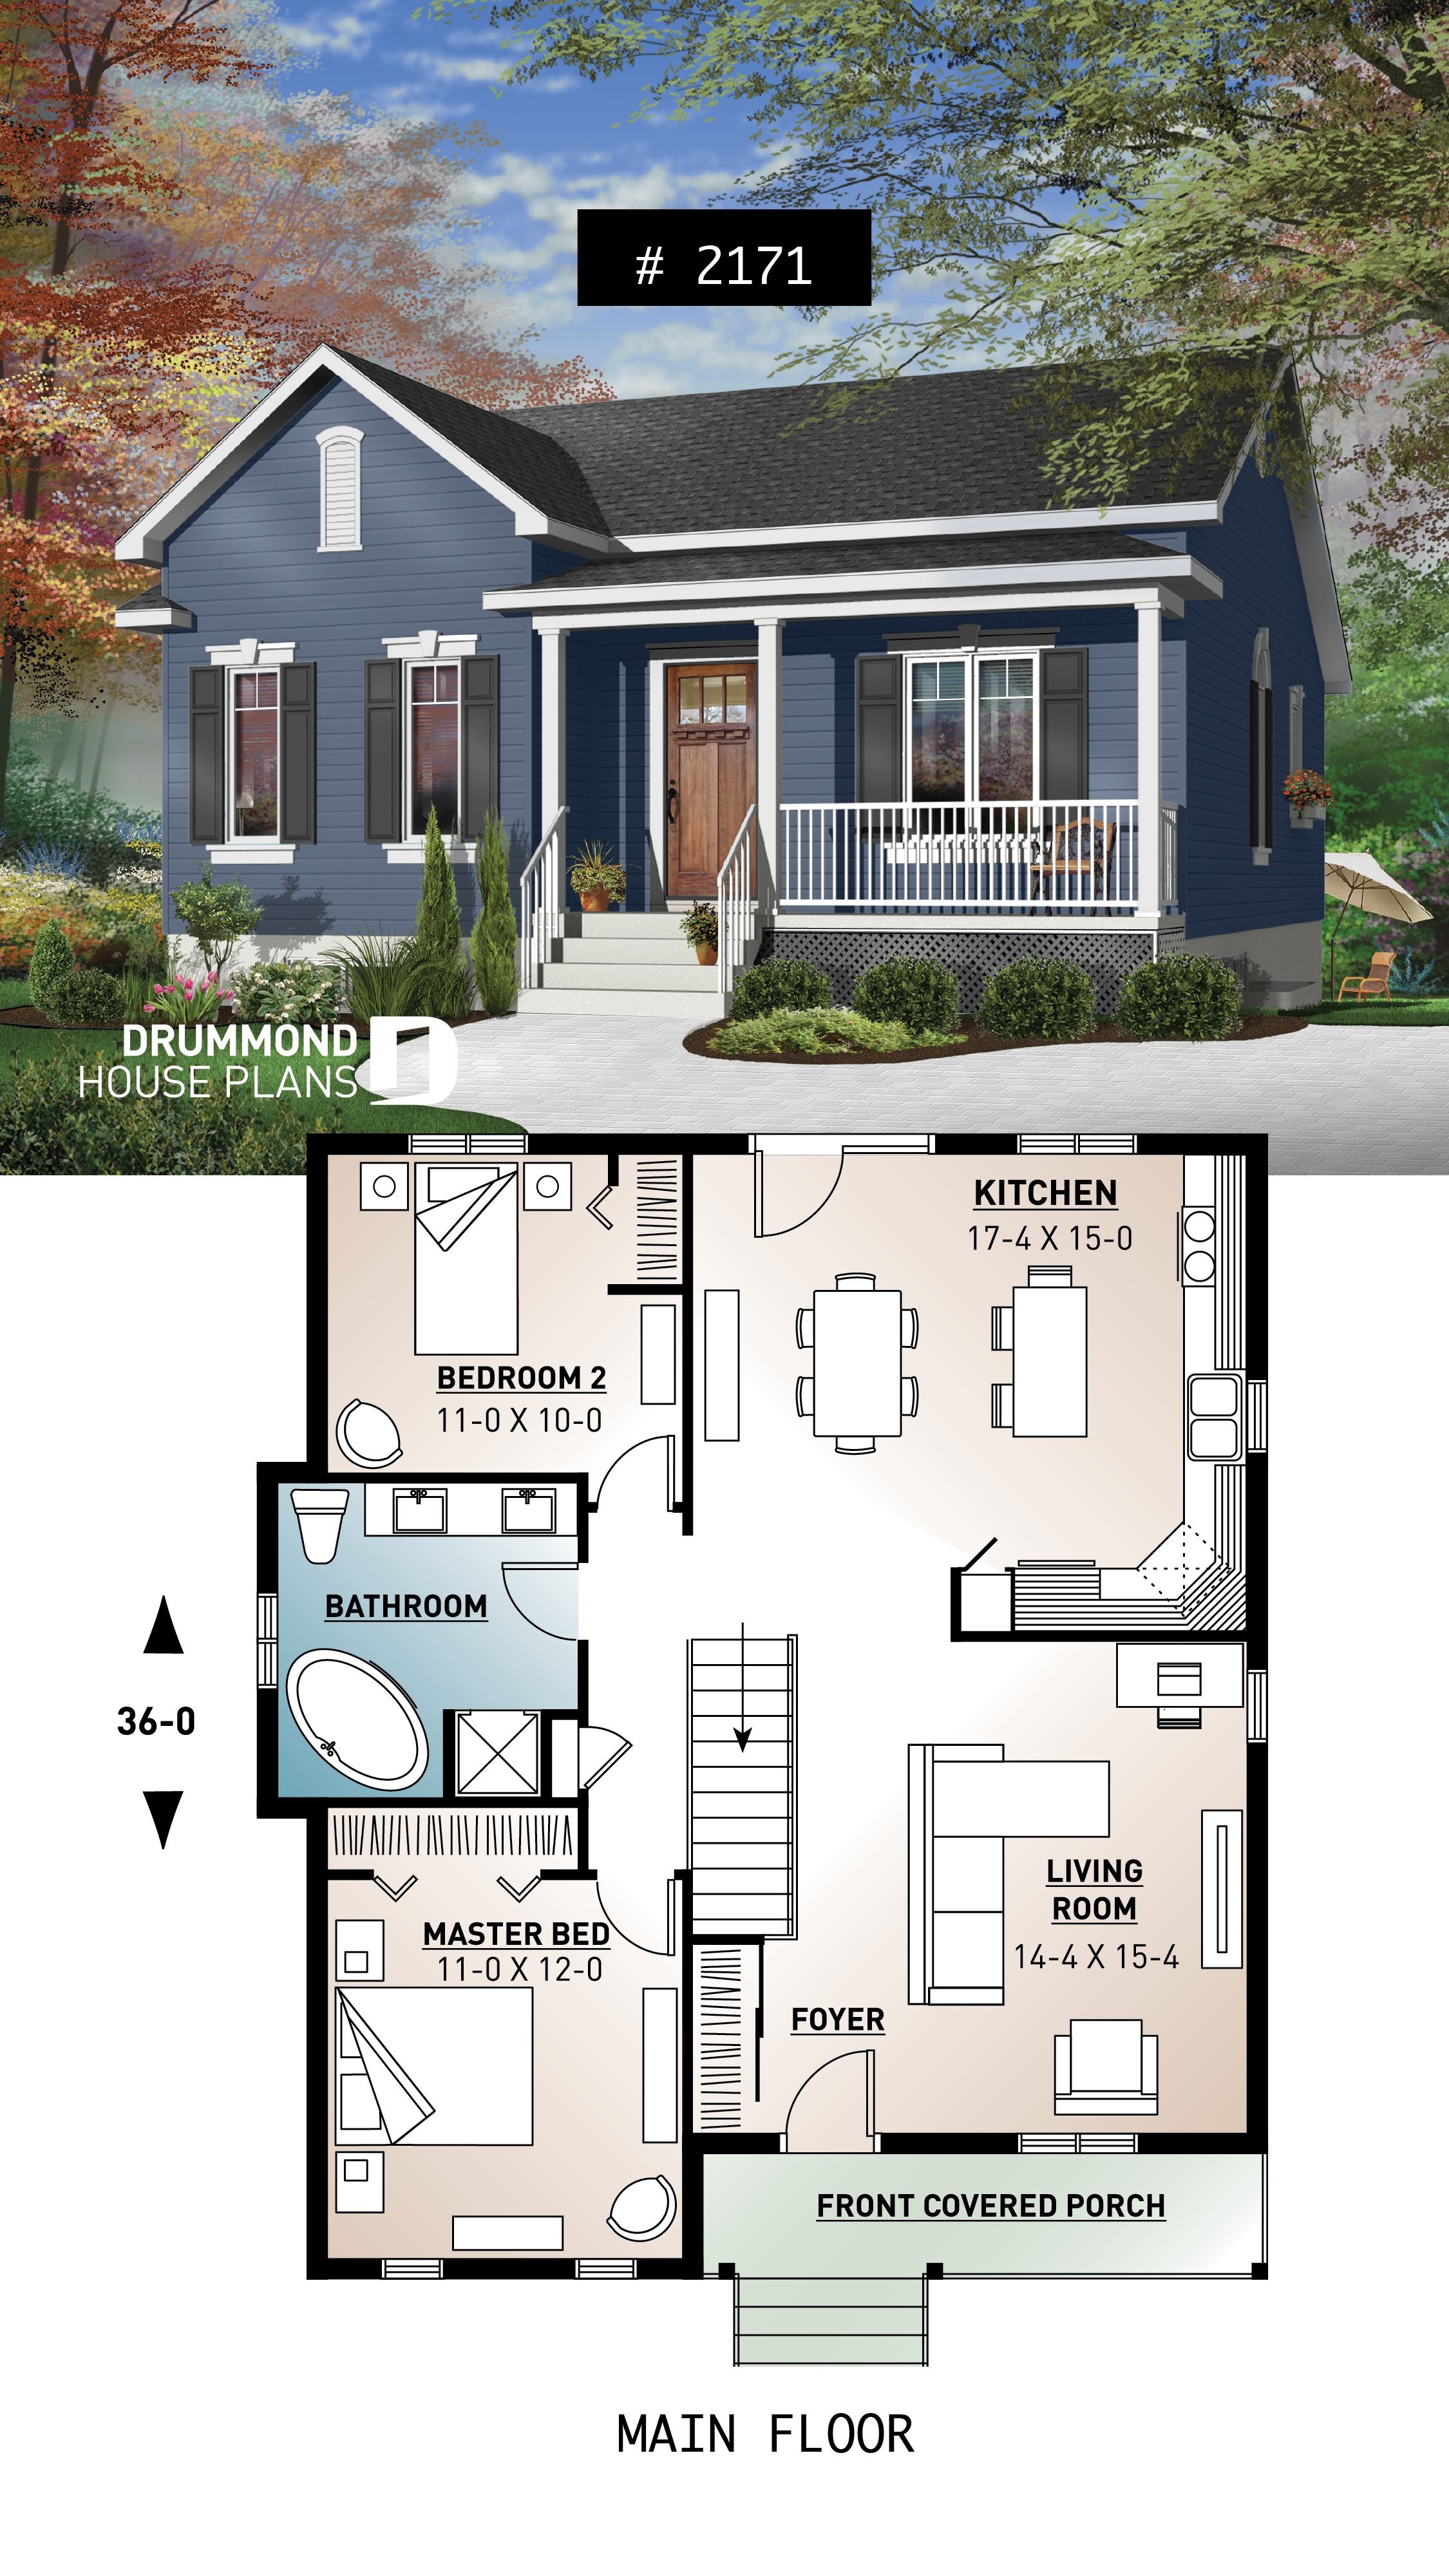 Small House Plans with Pictures Beautiful House Plan Kara No 2171